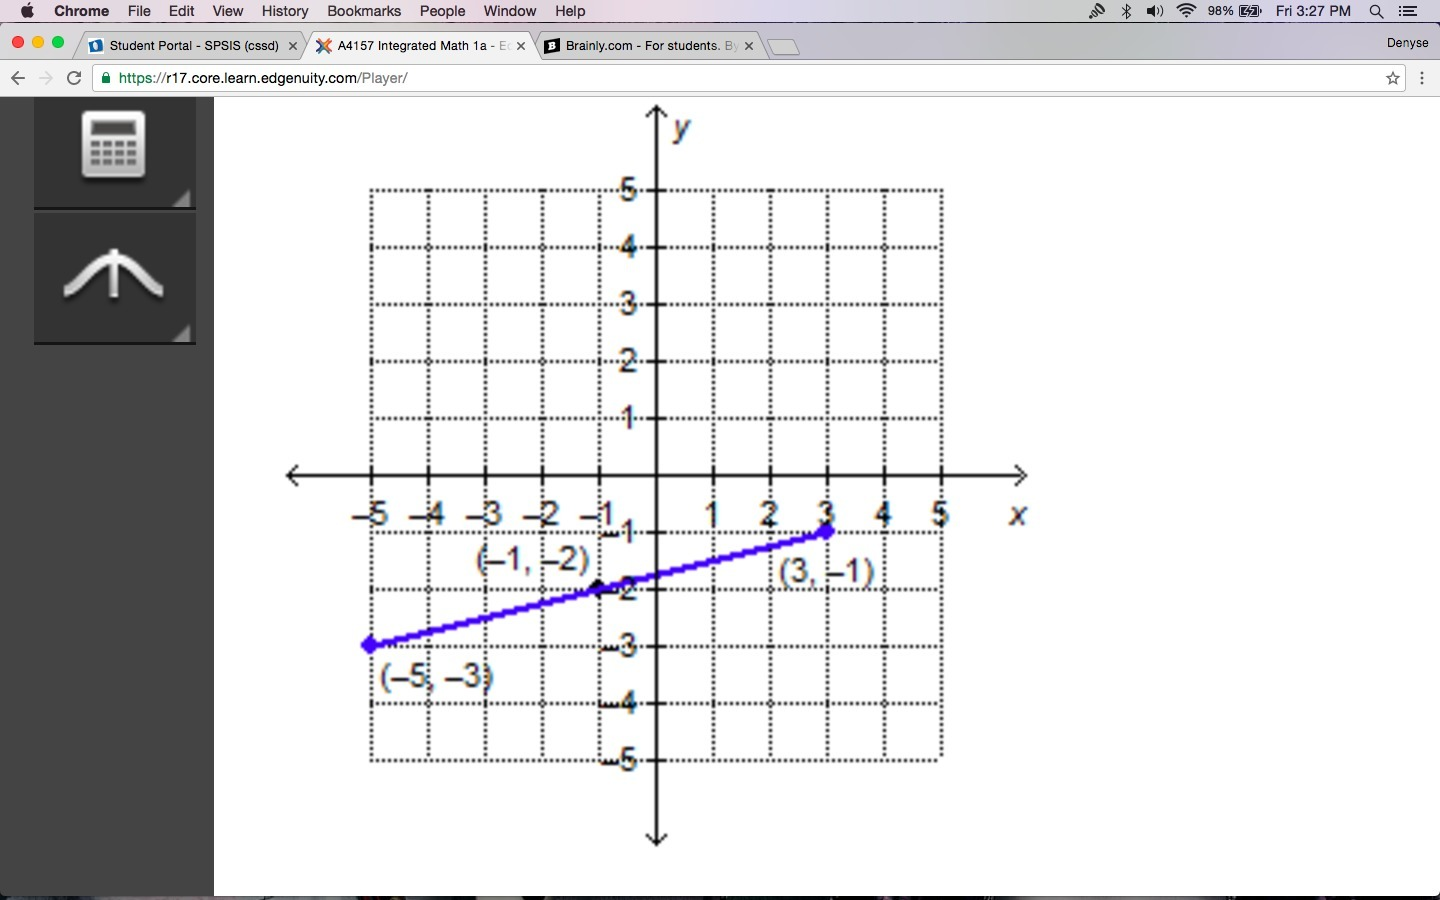 The Given Line Segment Has A Midpoint At 1 2 Please